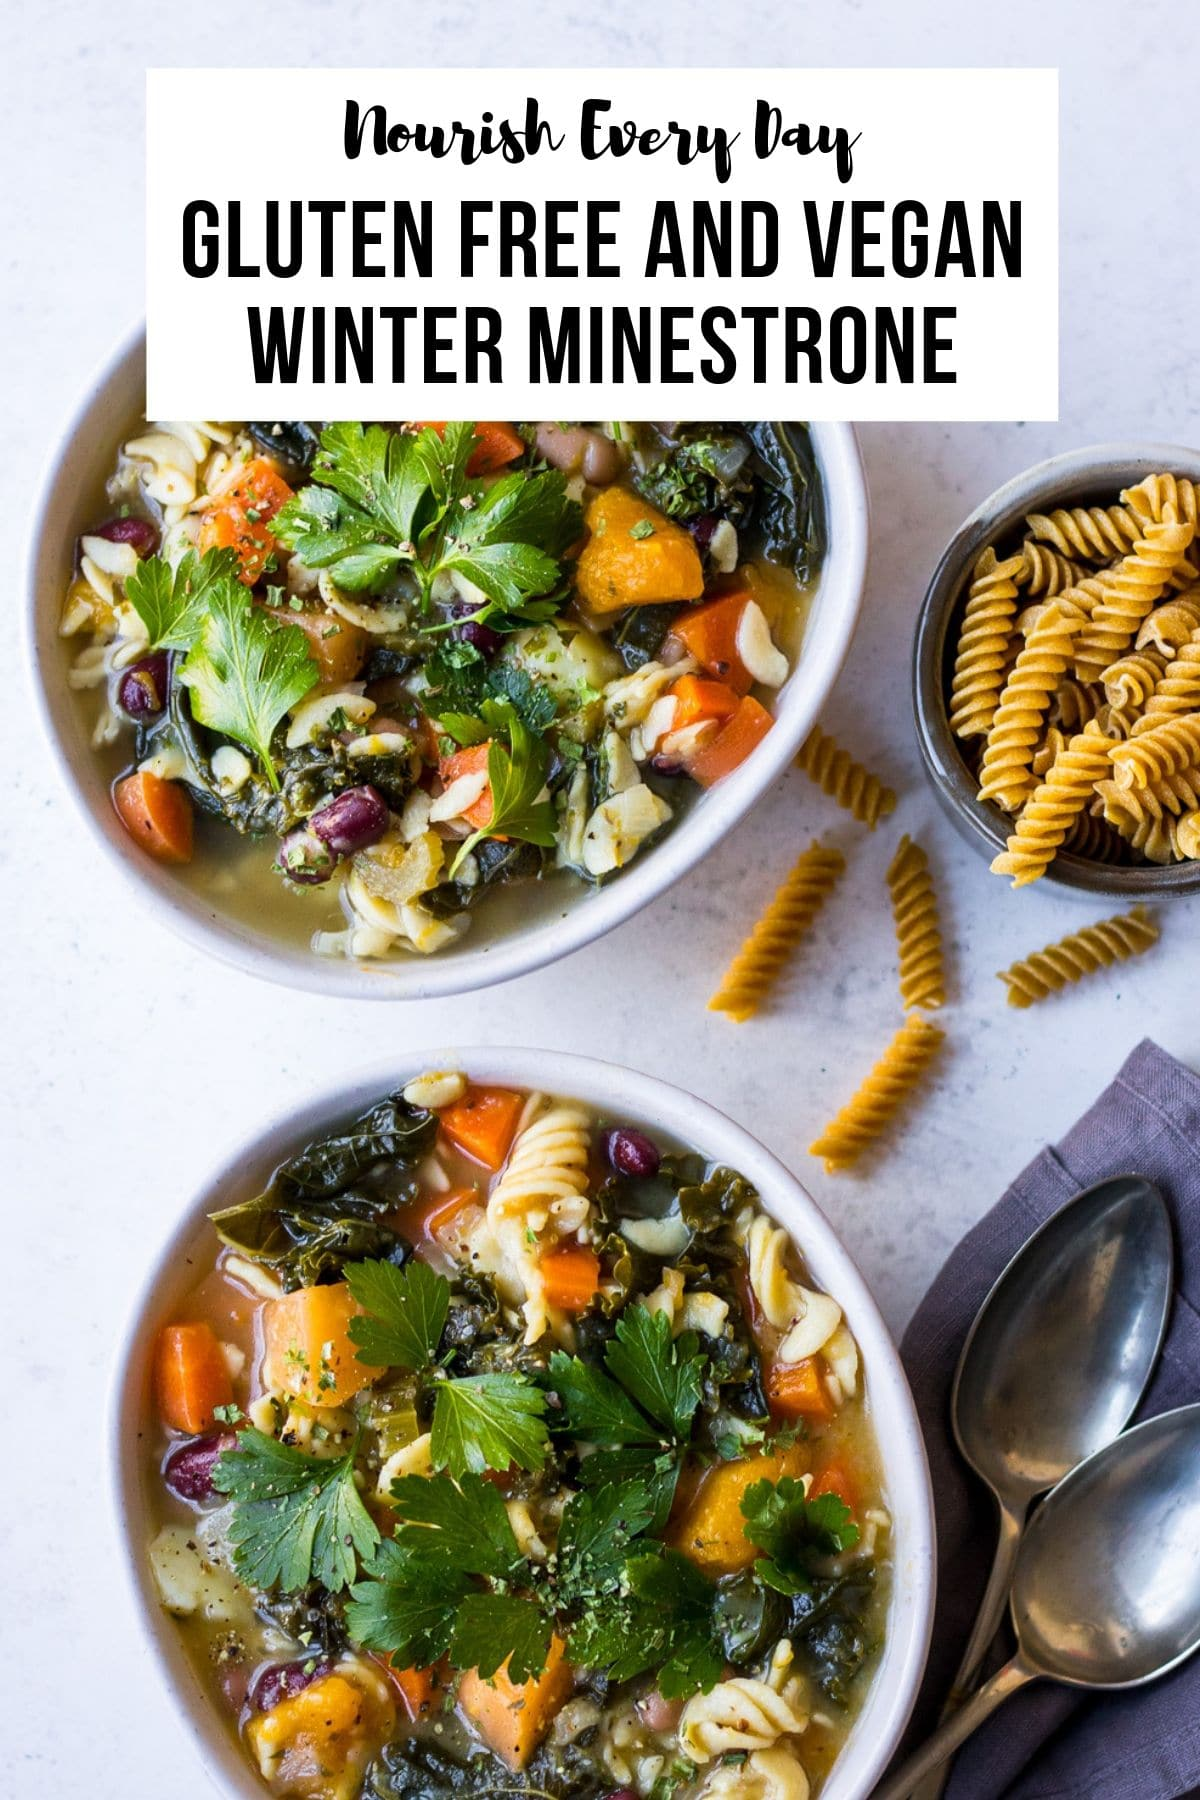 Winter Minestrone with Pulse Pasta on Nourish Every Day Blog